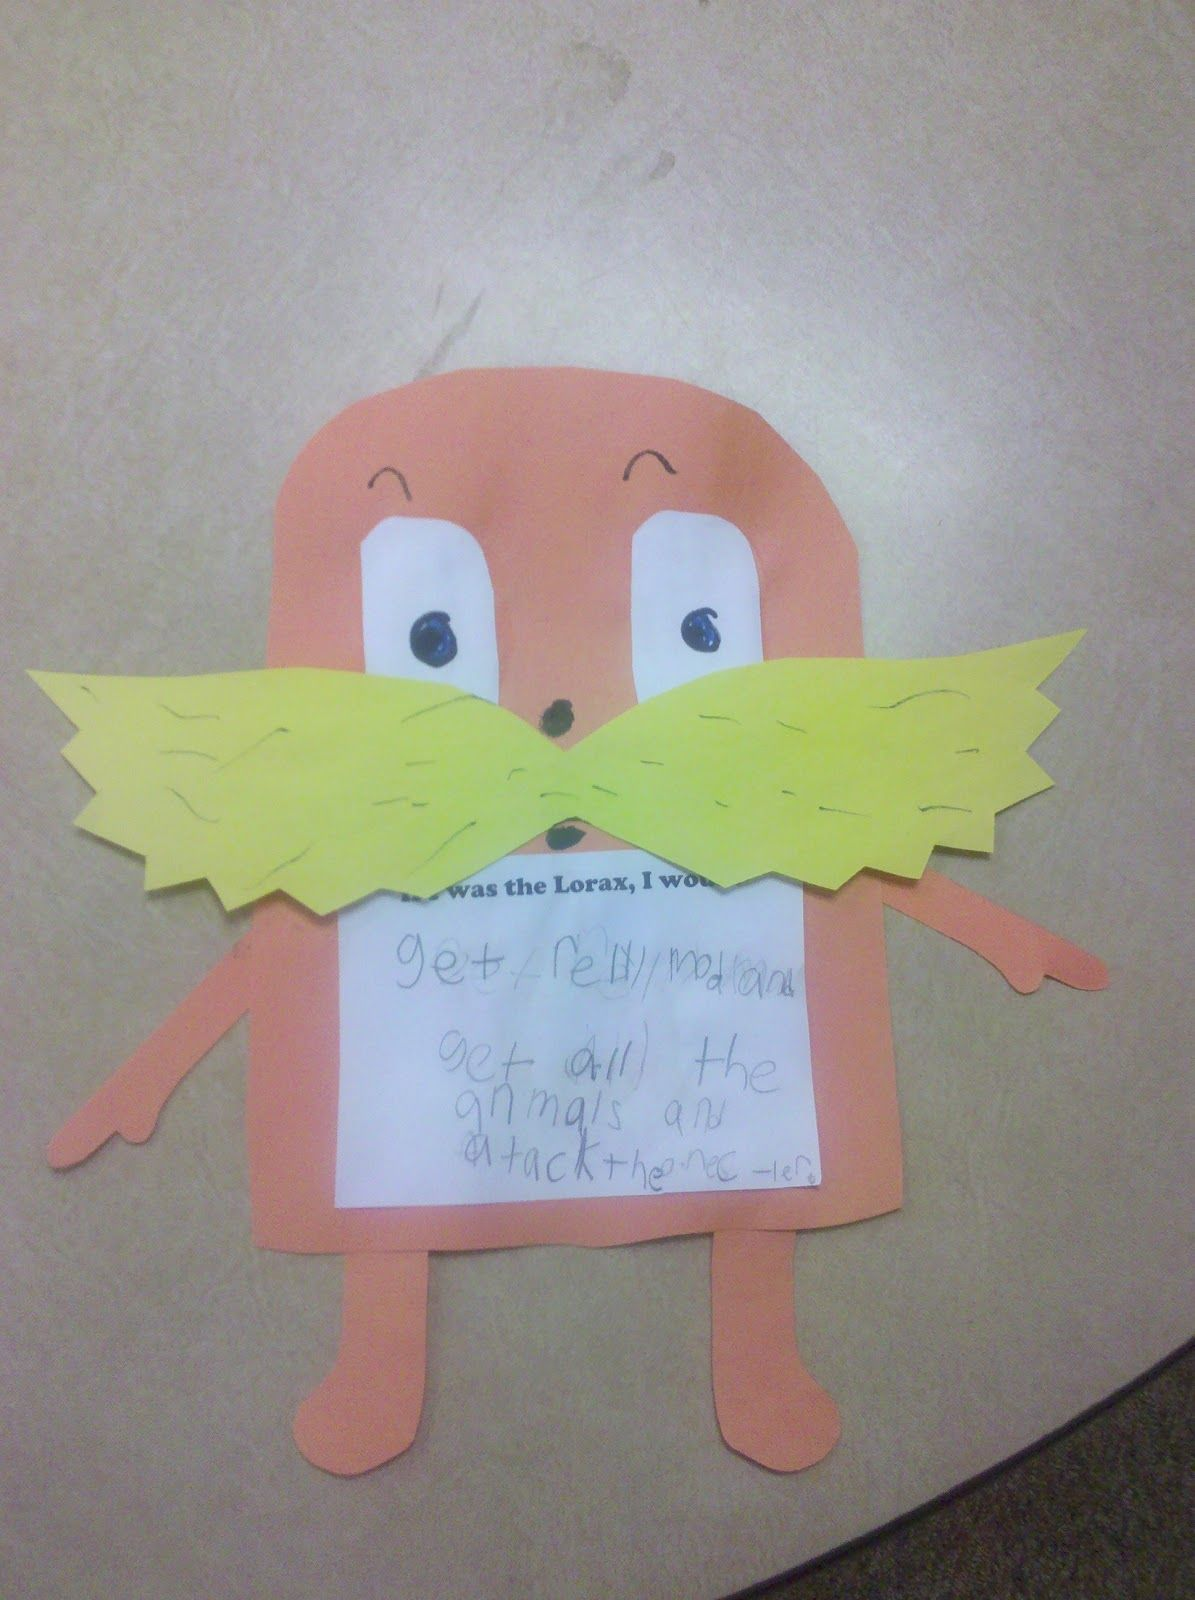 Spelling Supplement And The Lorax